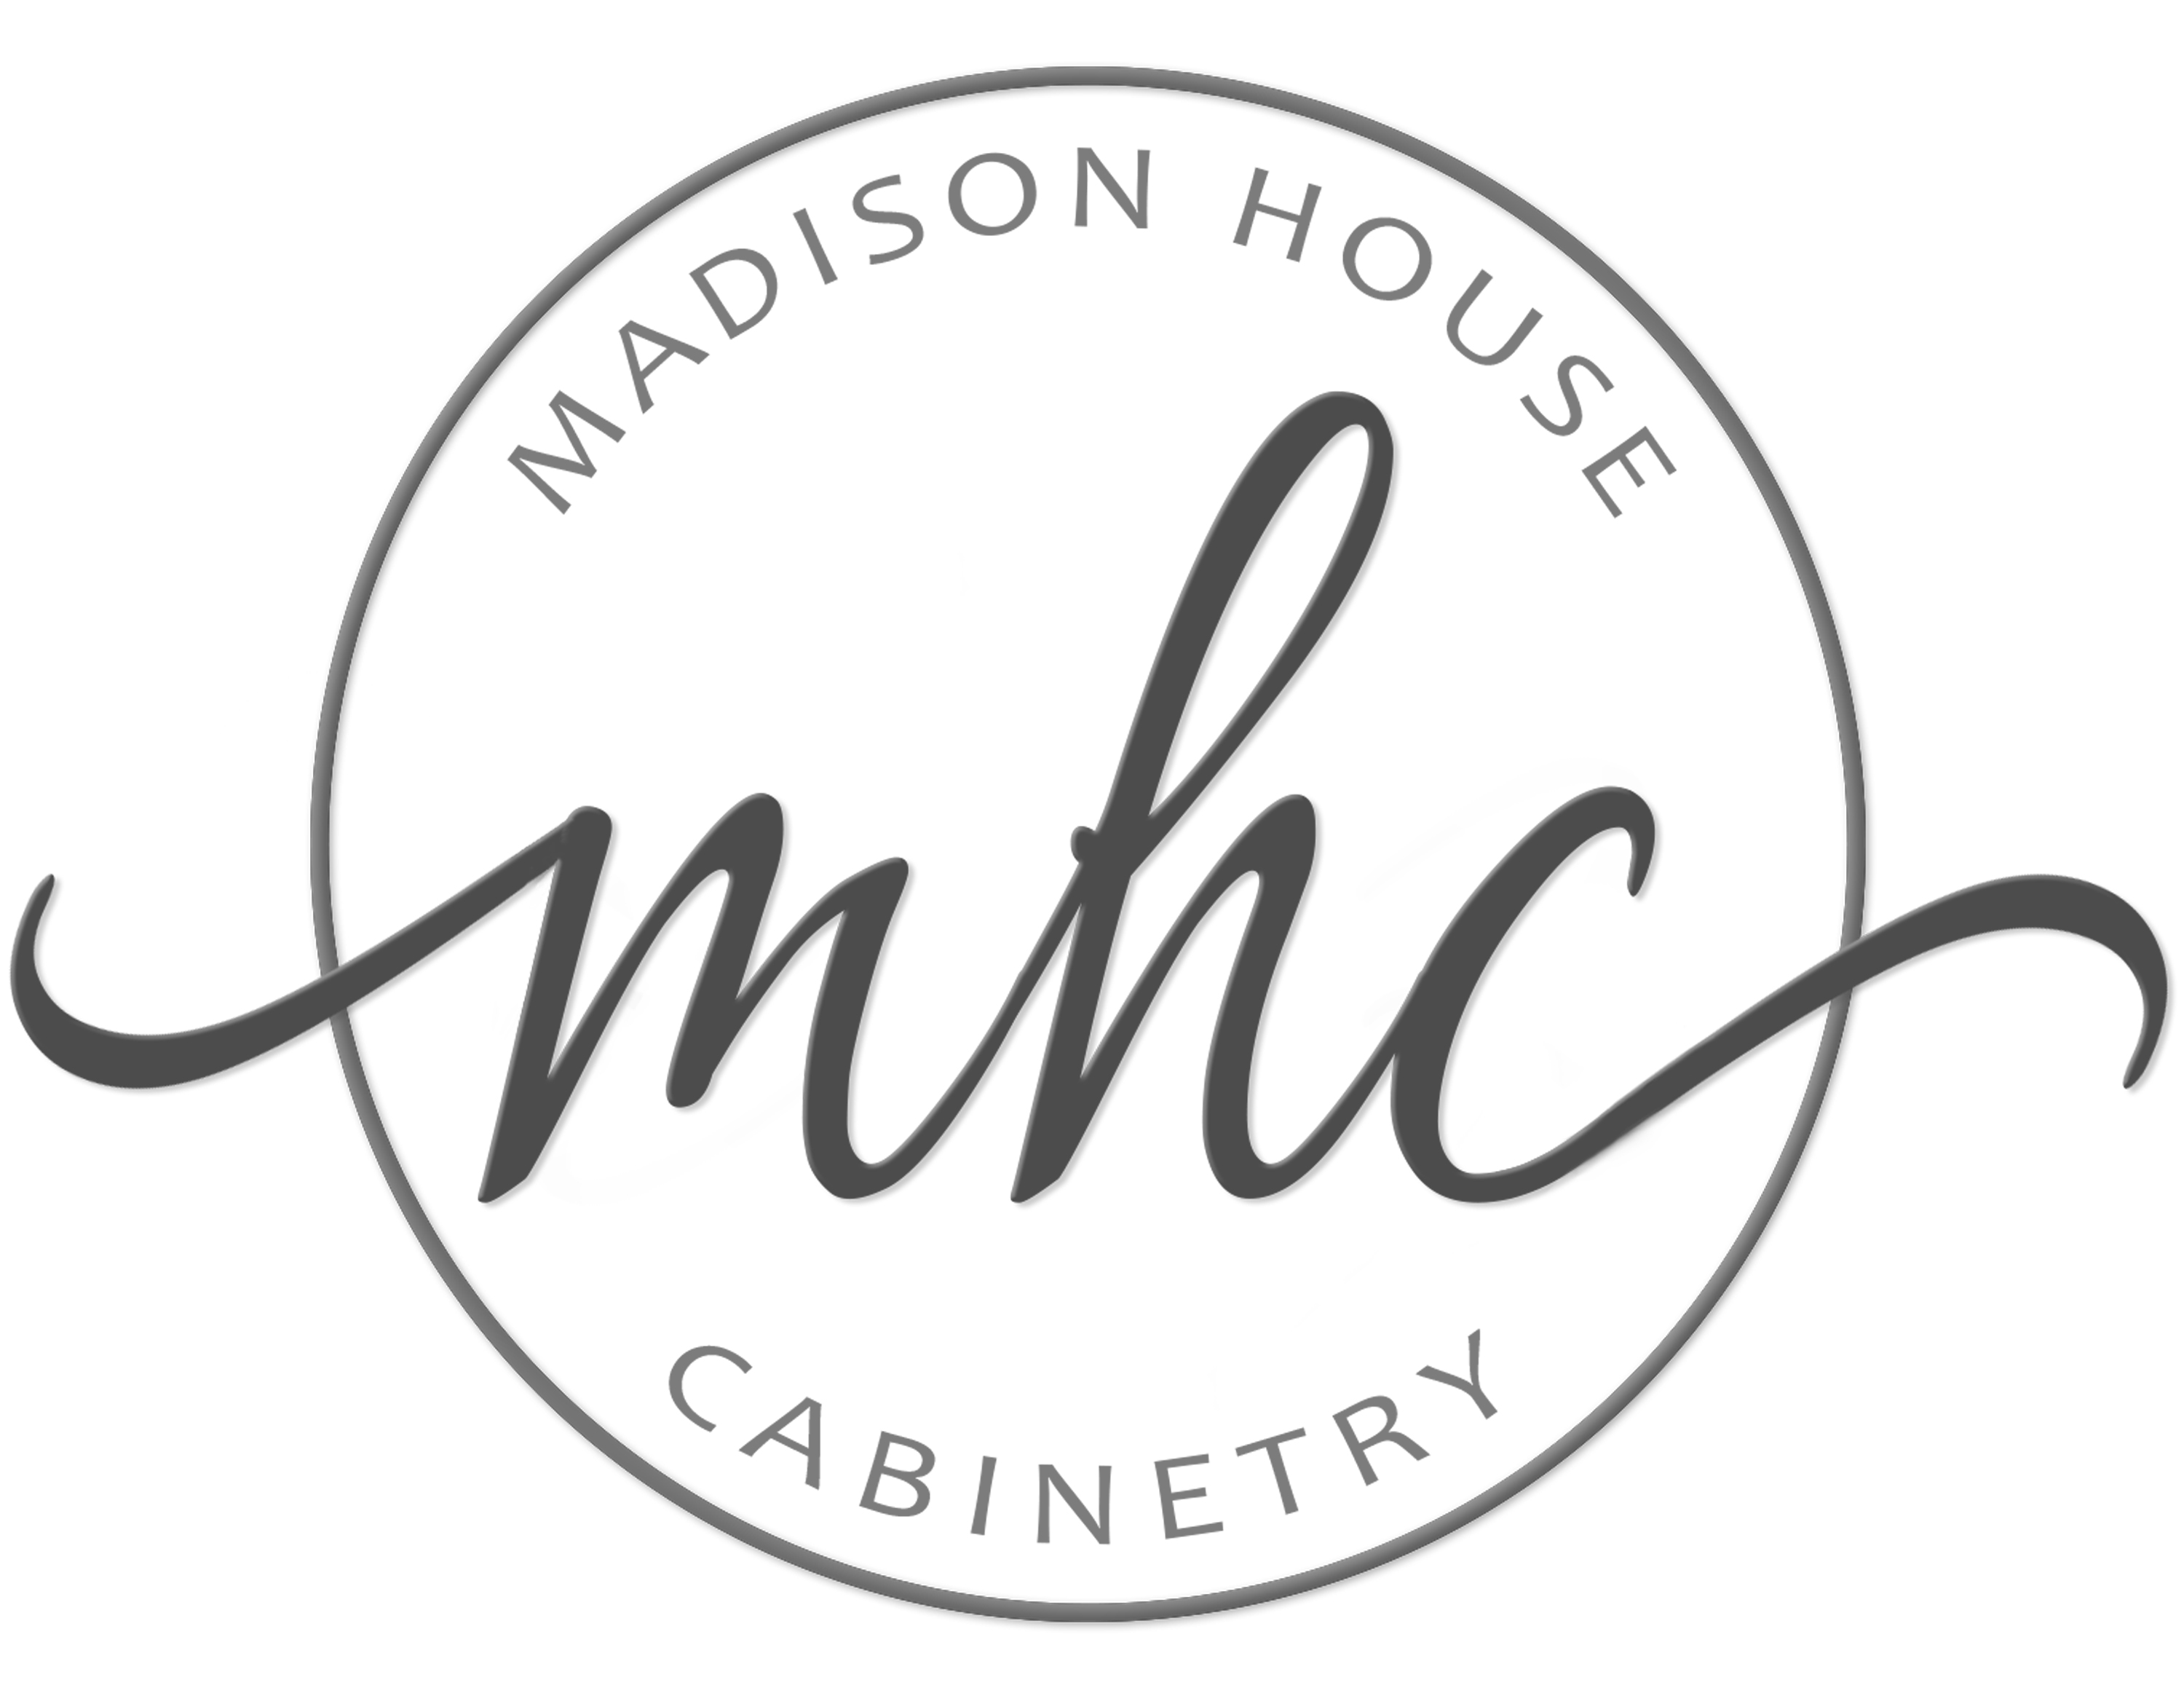 Madison House Cabinetry logo